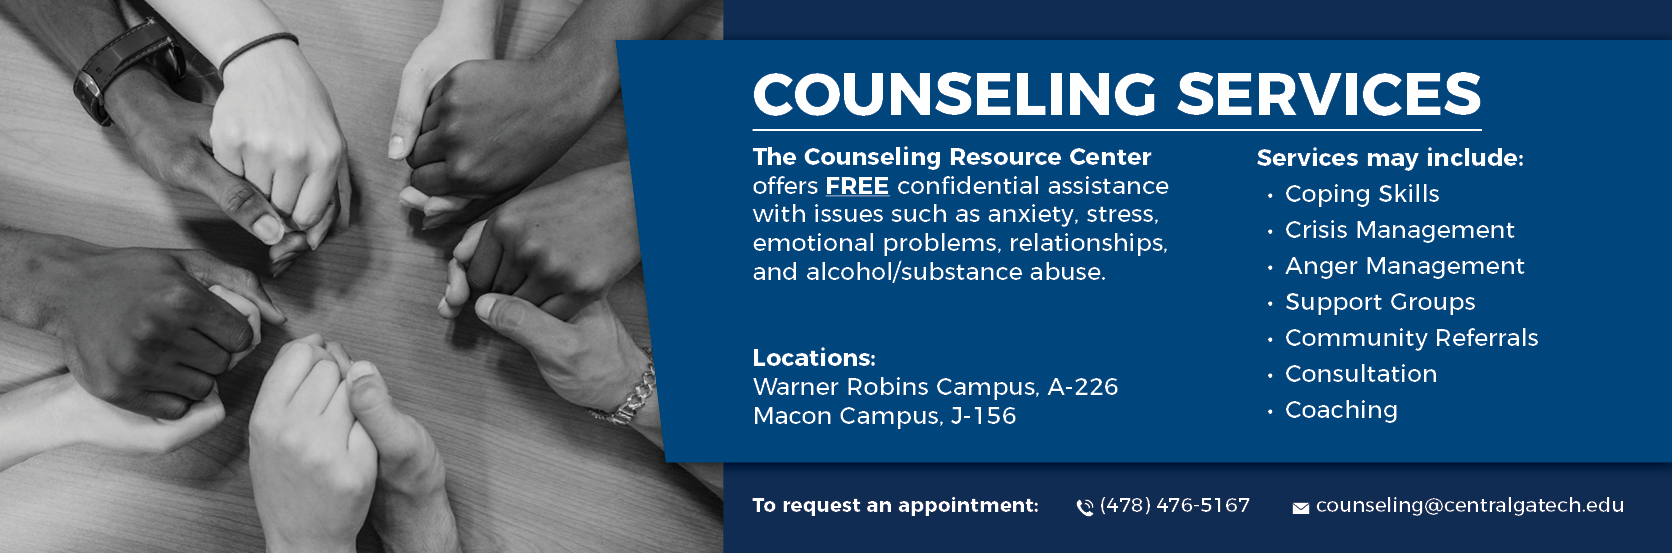 Counseling Services. The Counseling Resource Center offers FREE confidential assistance with issues such as anxiety, stress, emotional problems, relationships, and alcohol/substance abuse. Services may include: Coping Skills, Crisis Management, Anger Management, Support Groups, Community Referrals, Consultation, and Coaching. Locations: Warner Robins Campus, A-226. Macon Campus, J-156. To request an appointment, call (478) 476-5167 or email counseling@centralgatech.edu